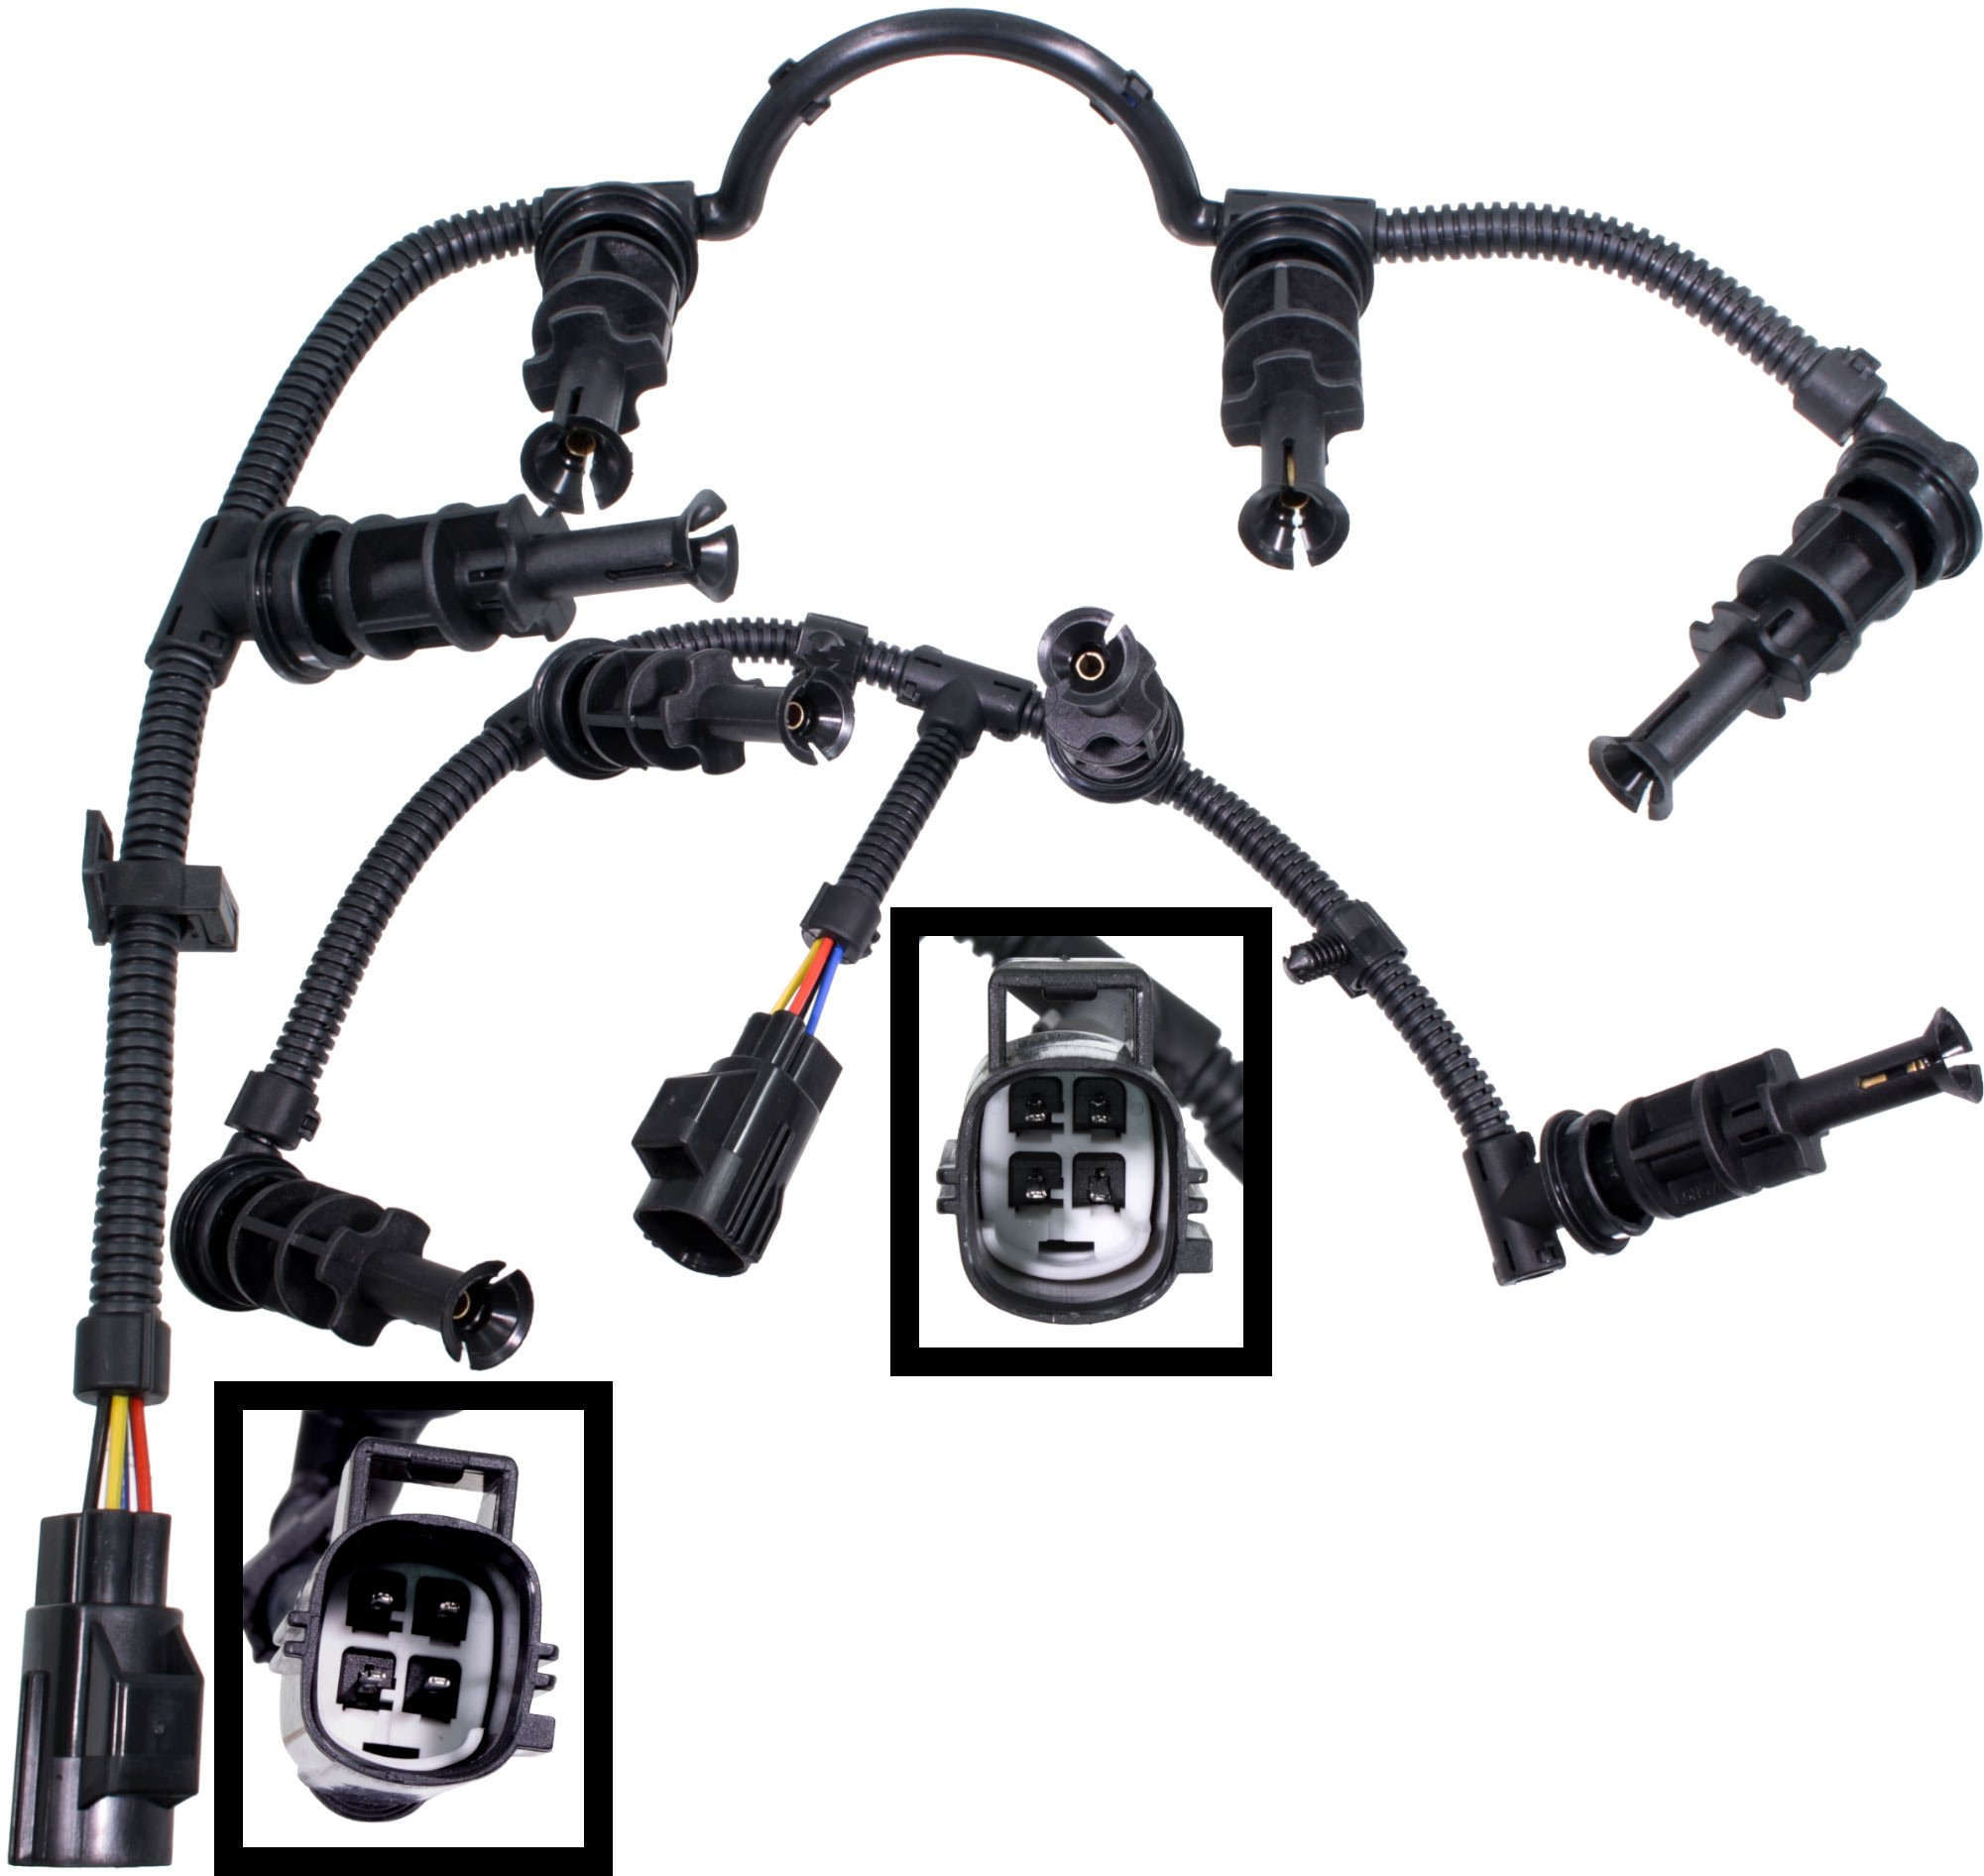 APDTY 133942 Glow Plug Wire Wiring Harness Left & Right Set Fits 2008-2010 Ford F250 F350 F450 F550 Super Duty 6.4L Diesel (Replaces 8C3Z-12A690-BA, 8C3Z-12A690-AA, 1876293C1 1876283C1)